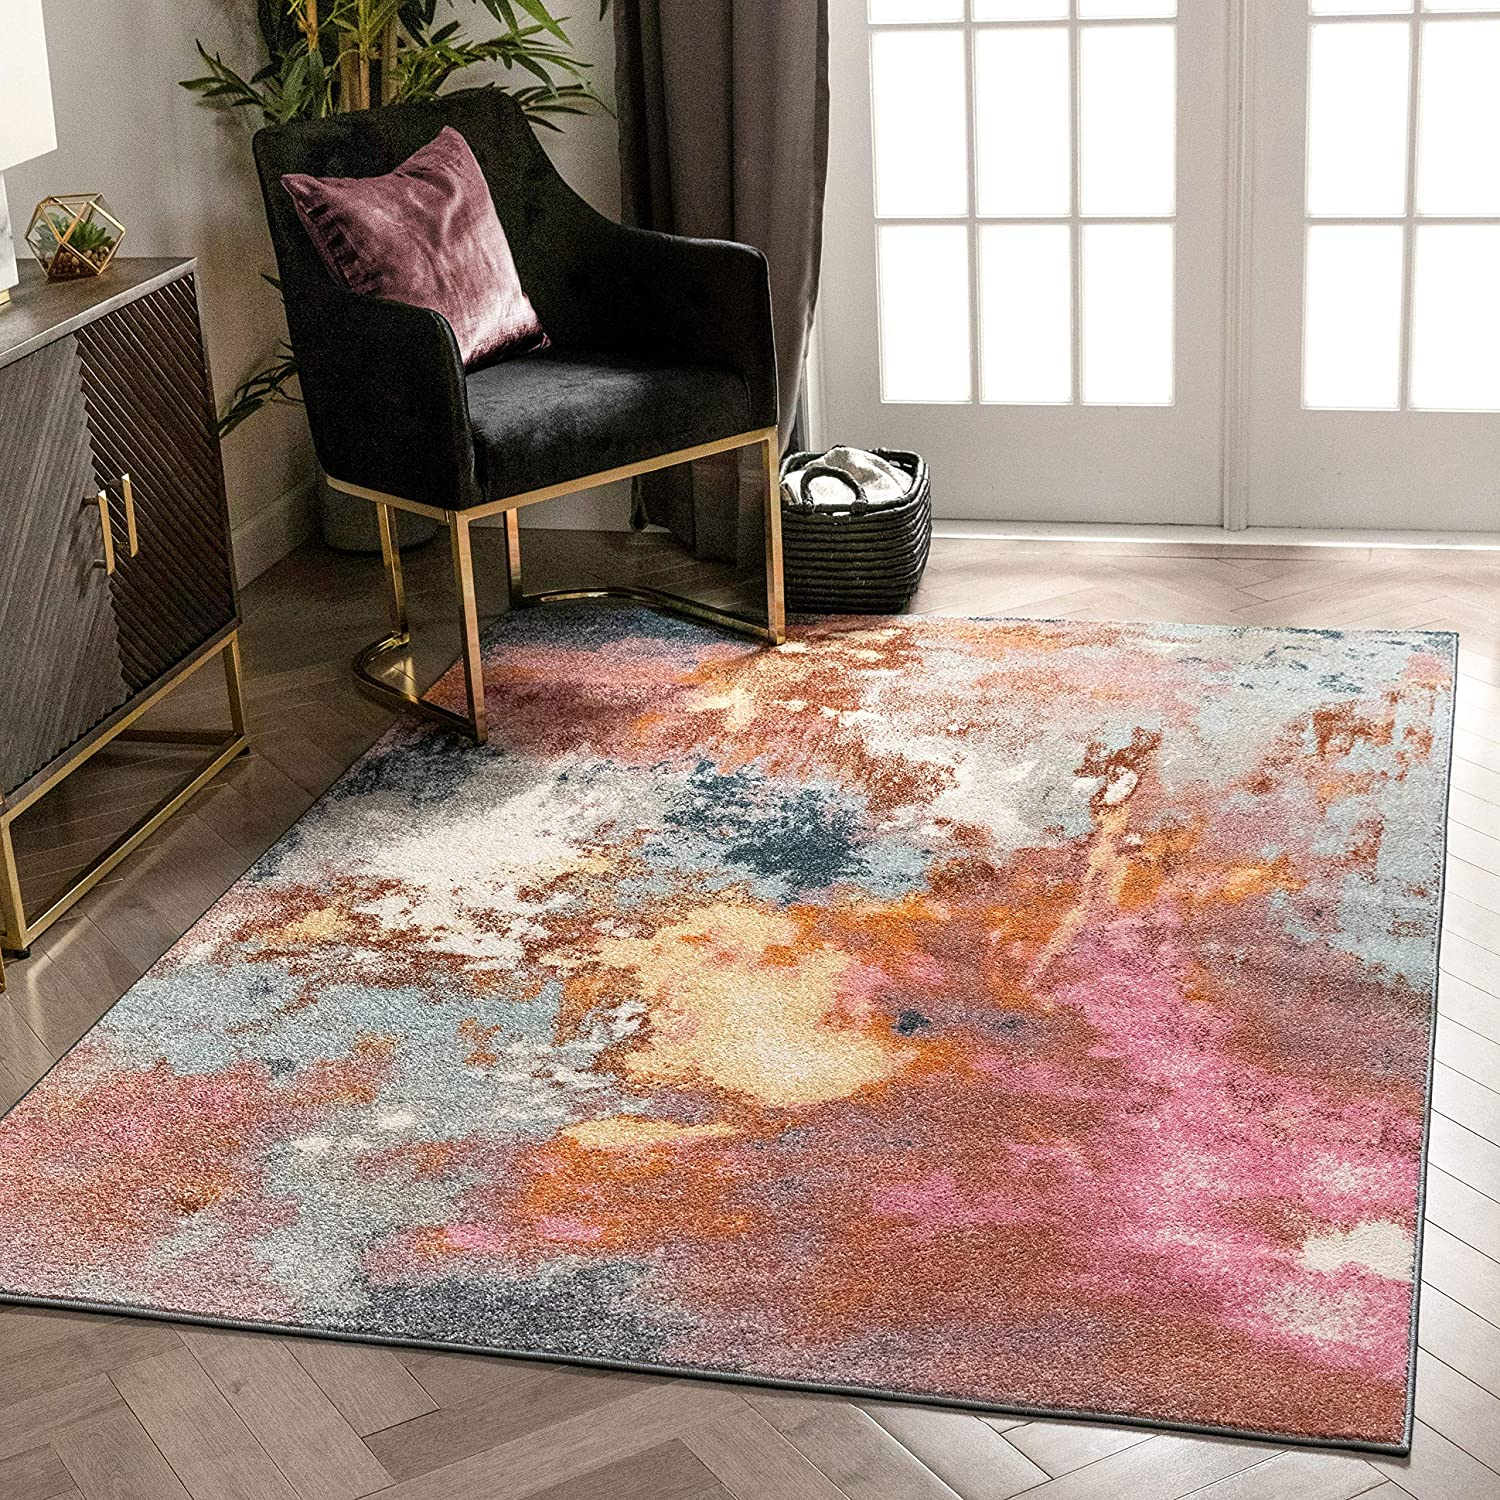 Well Woven Kosme Bohemian Vintage Multi Blue & Pink Abstract Geometric Pattern Area Rug 5x7 (5'3